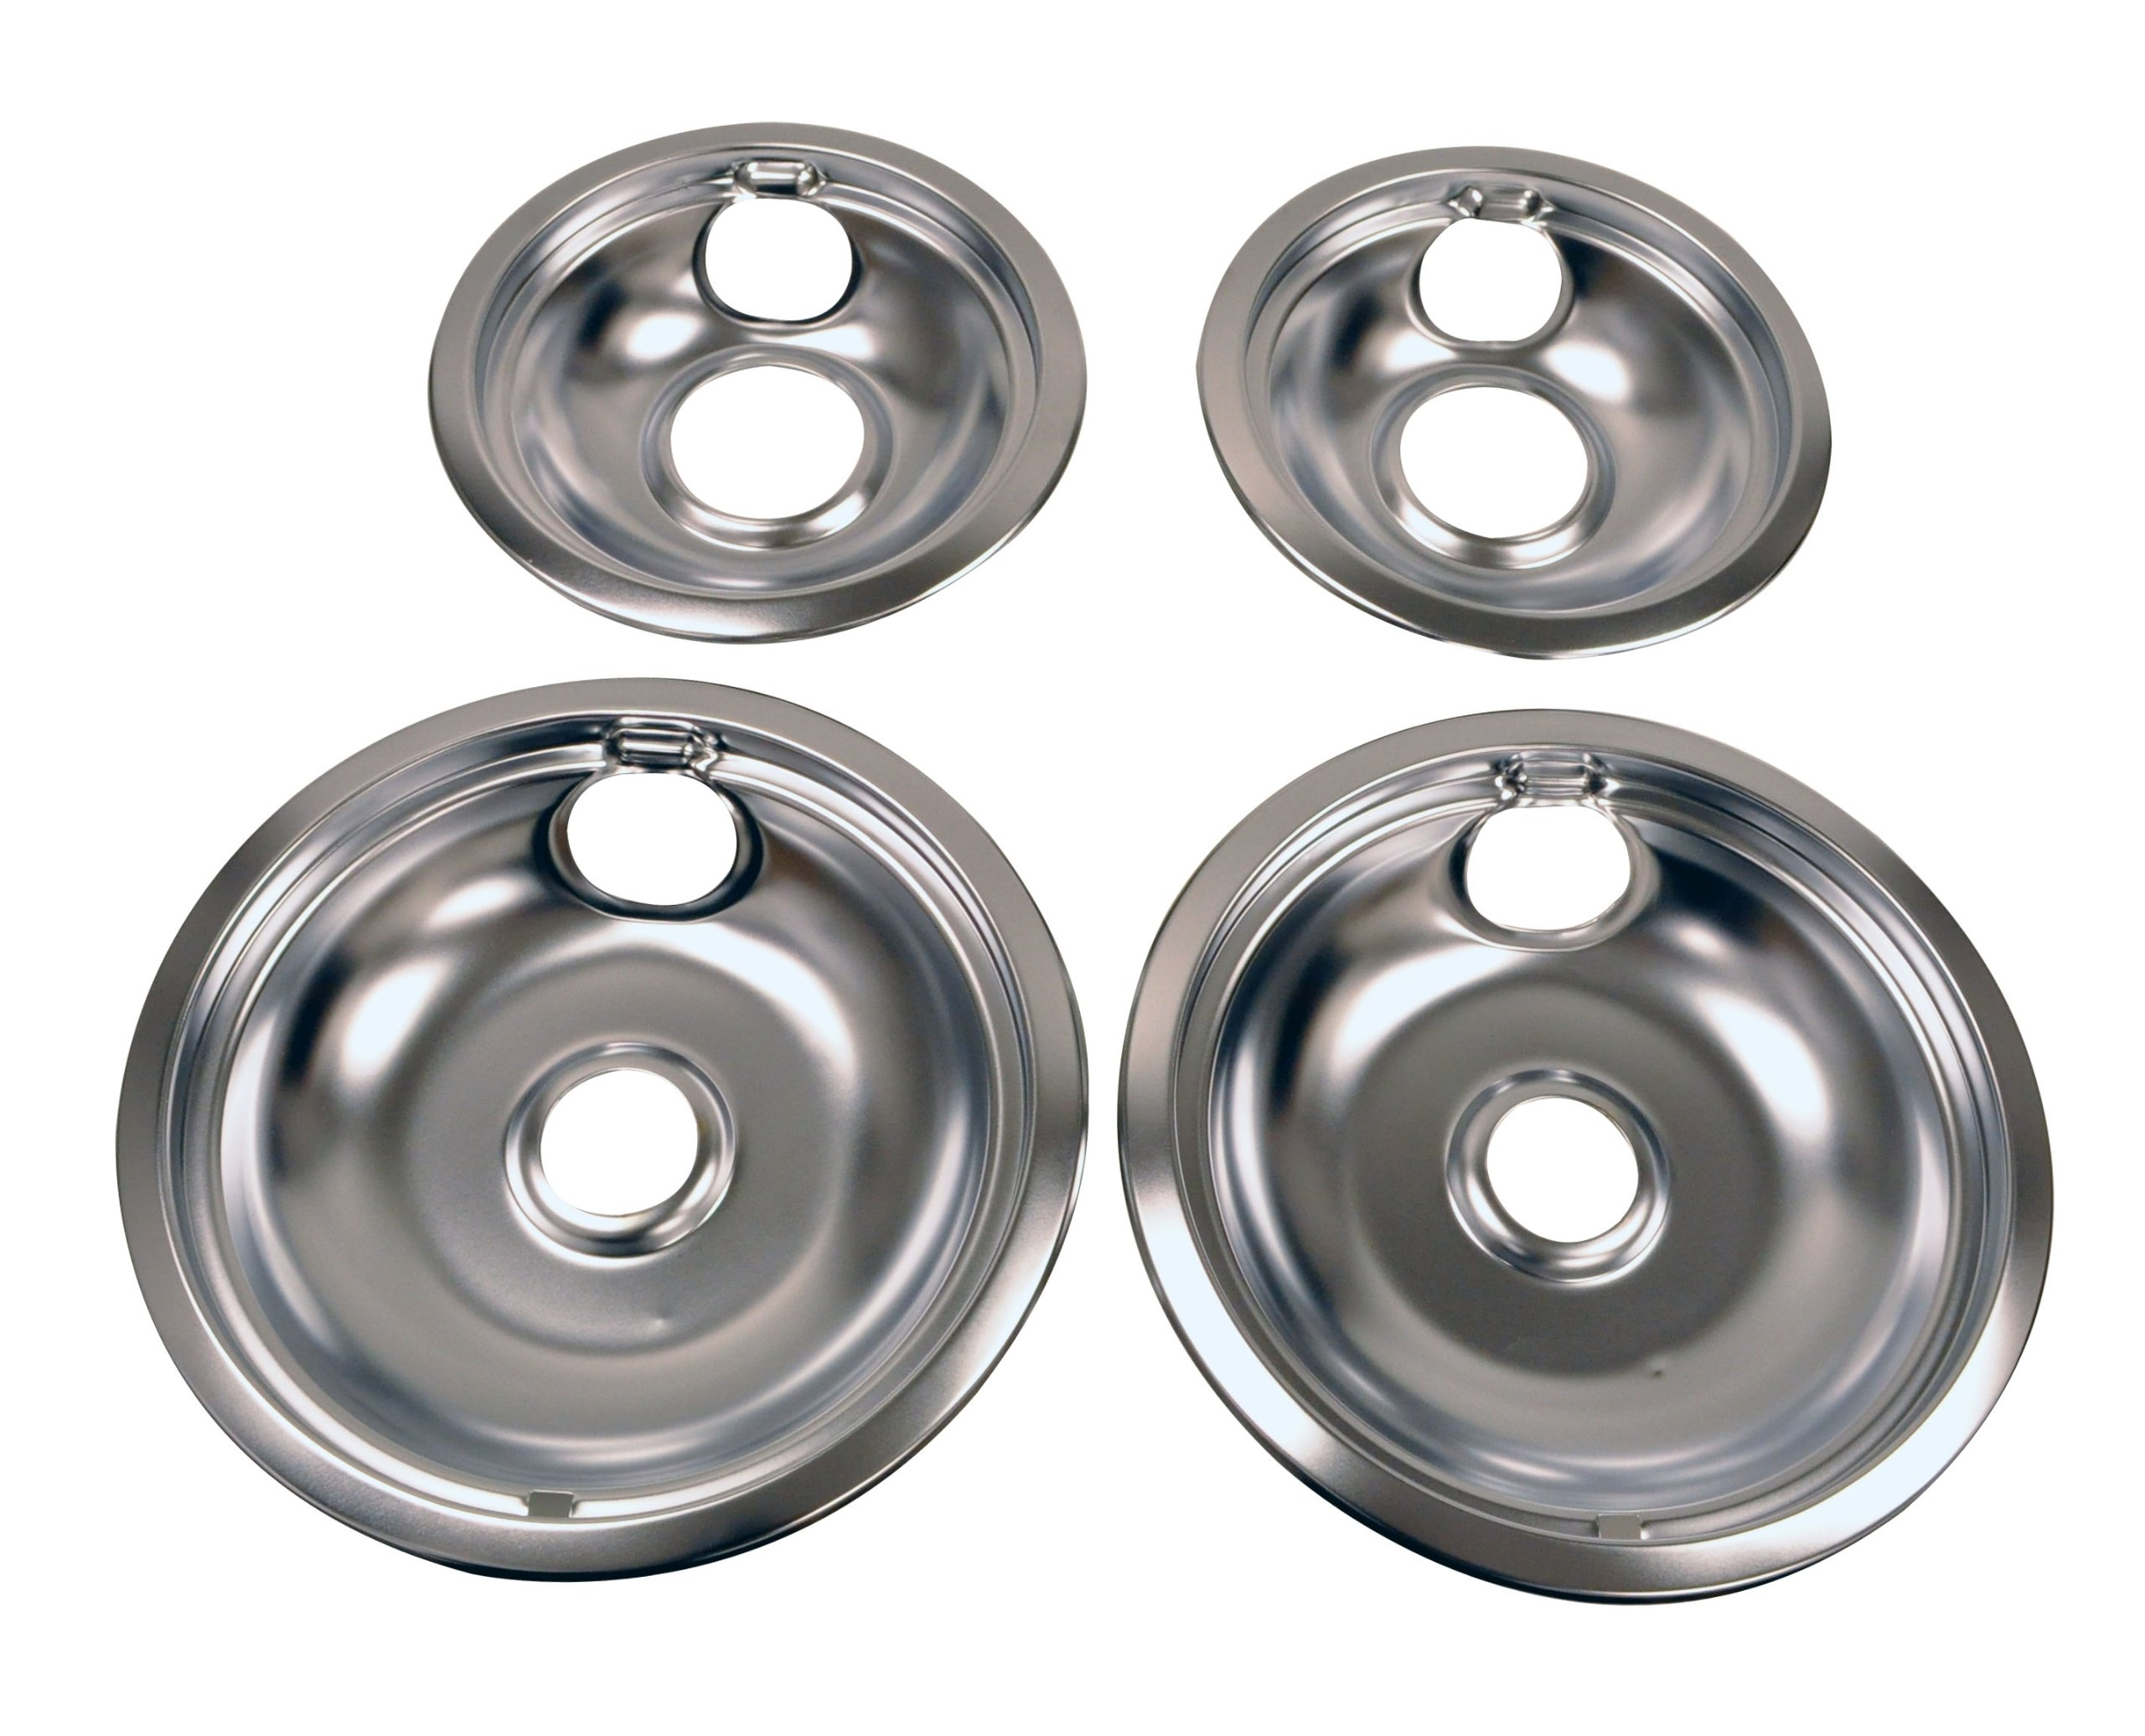 Whirlpool W10278125 Drip Pan Kit, Chrome by Whirlpool